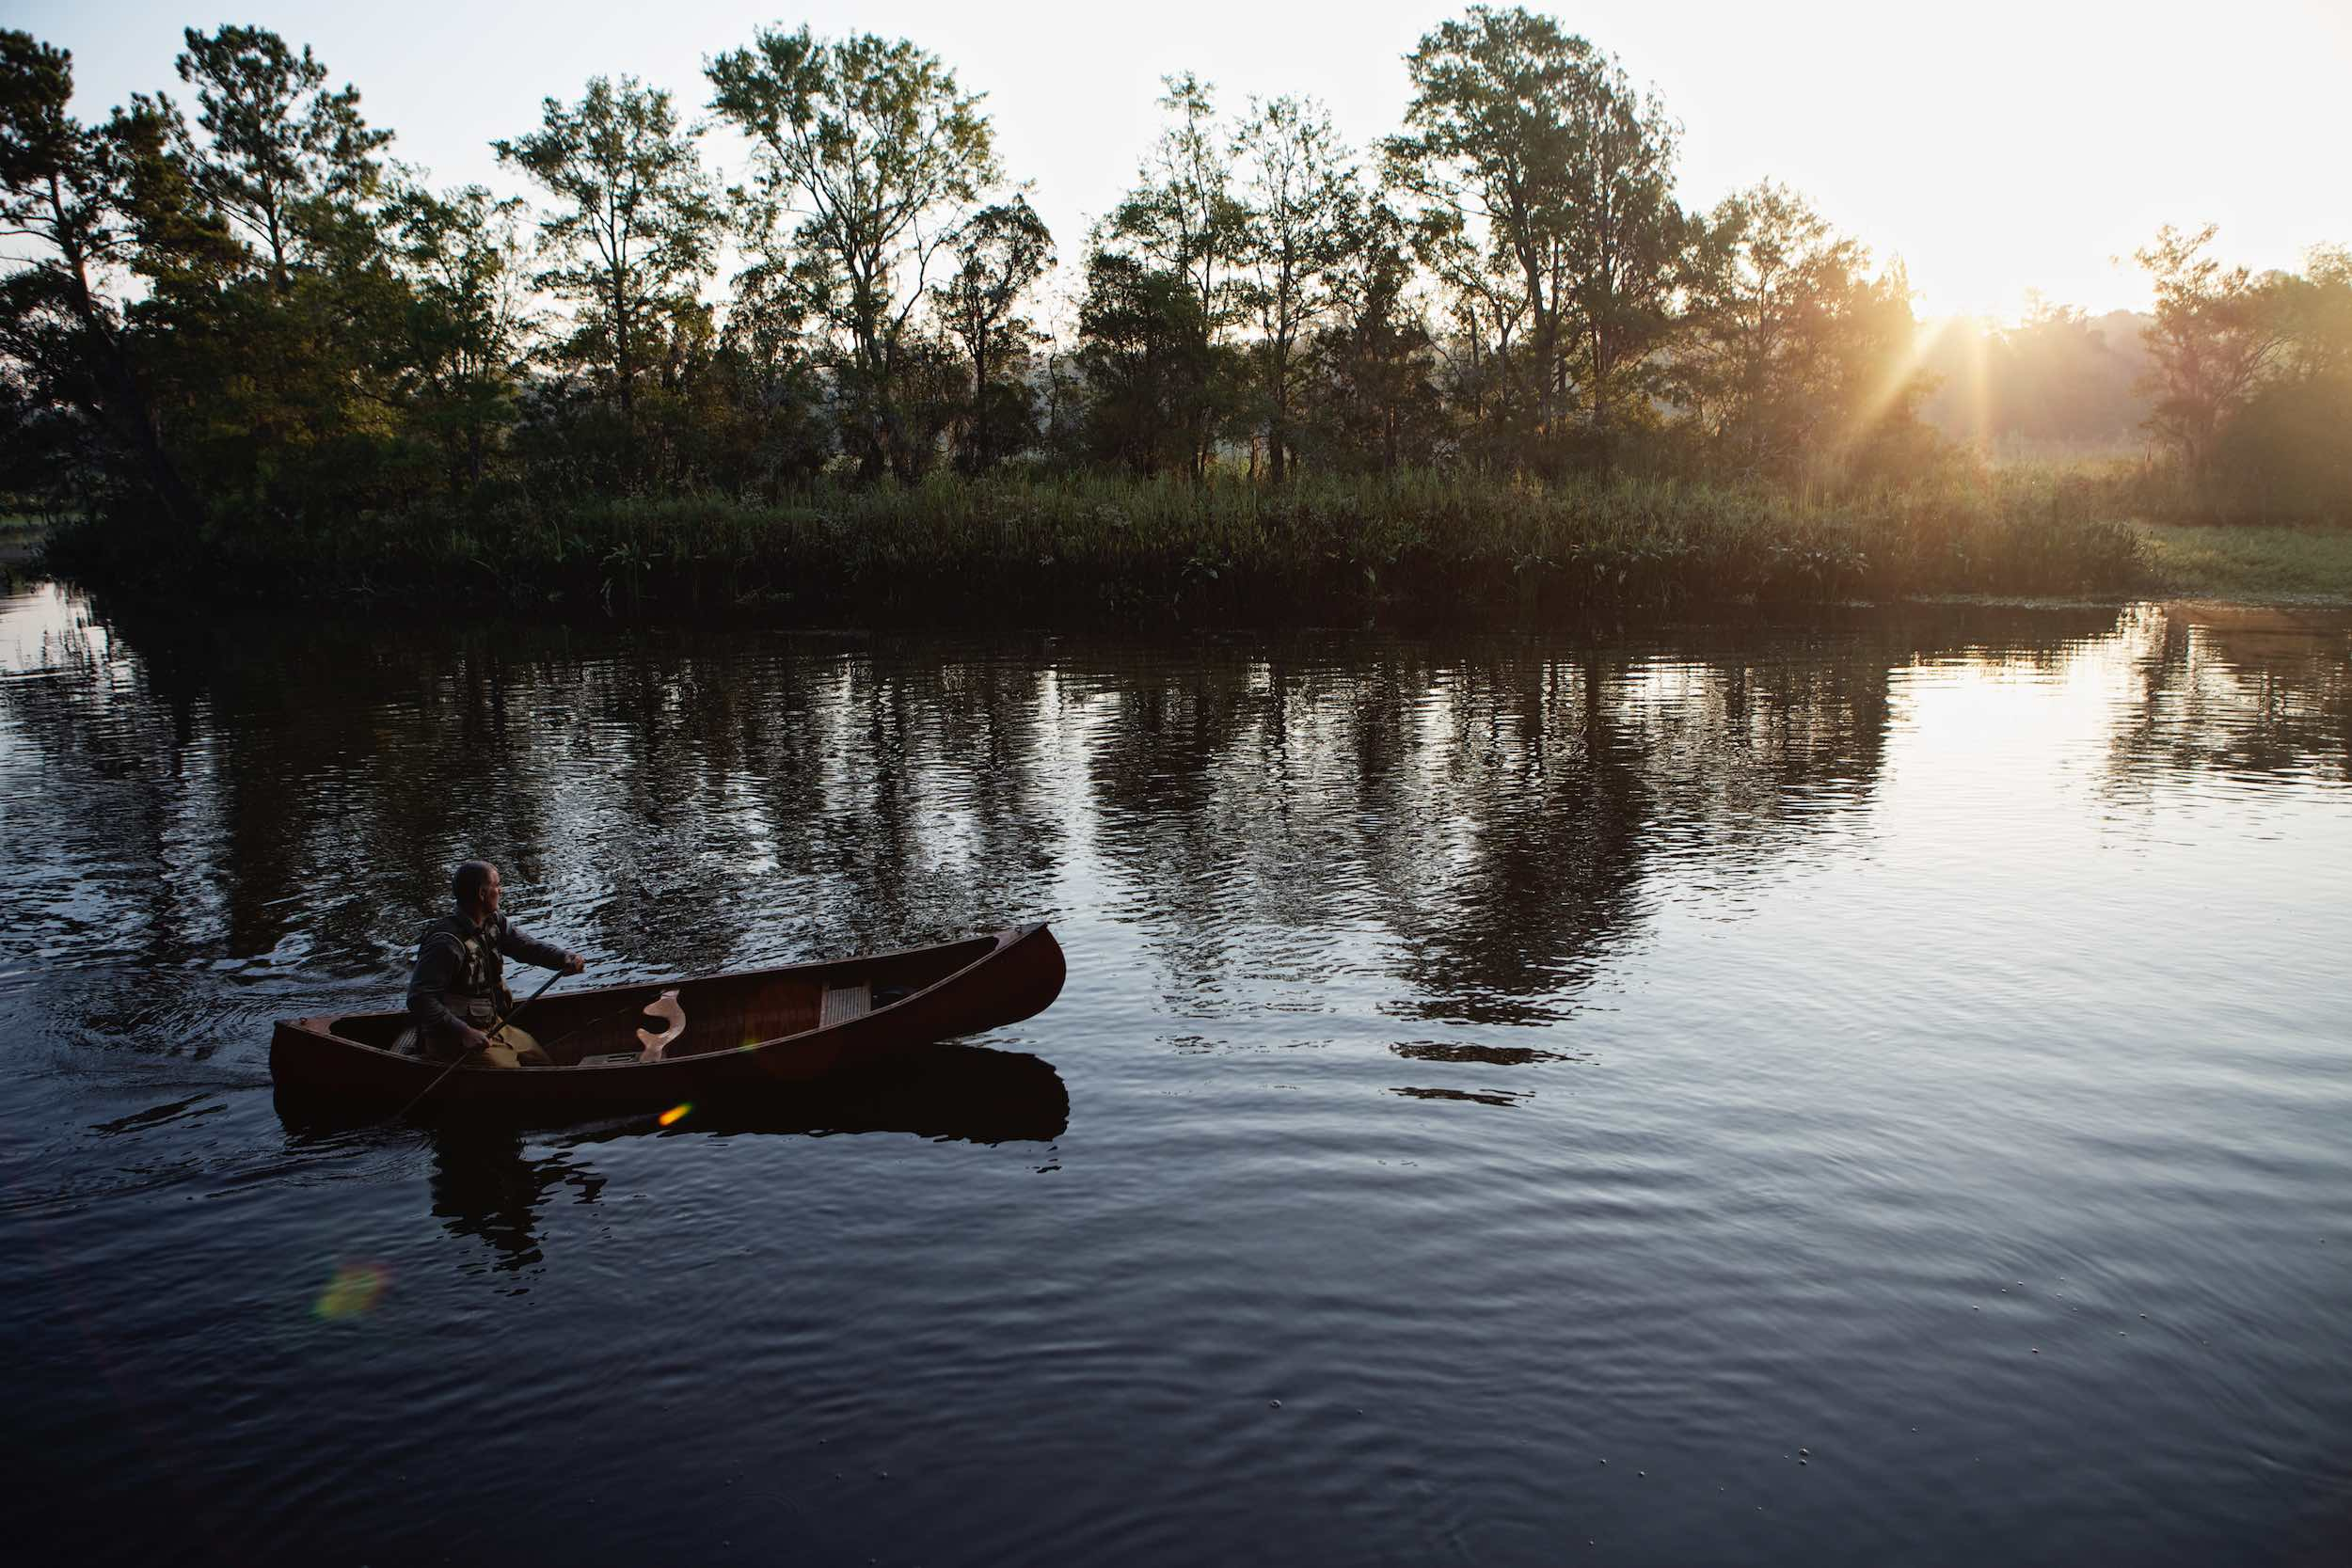 Jody Horton Photography - Canoer on the water at sunset, shot for Jack Daniels Single Barrel.